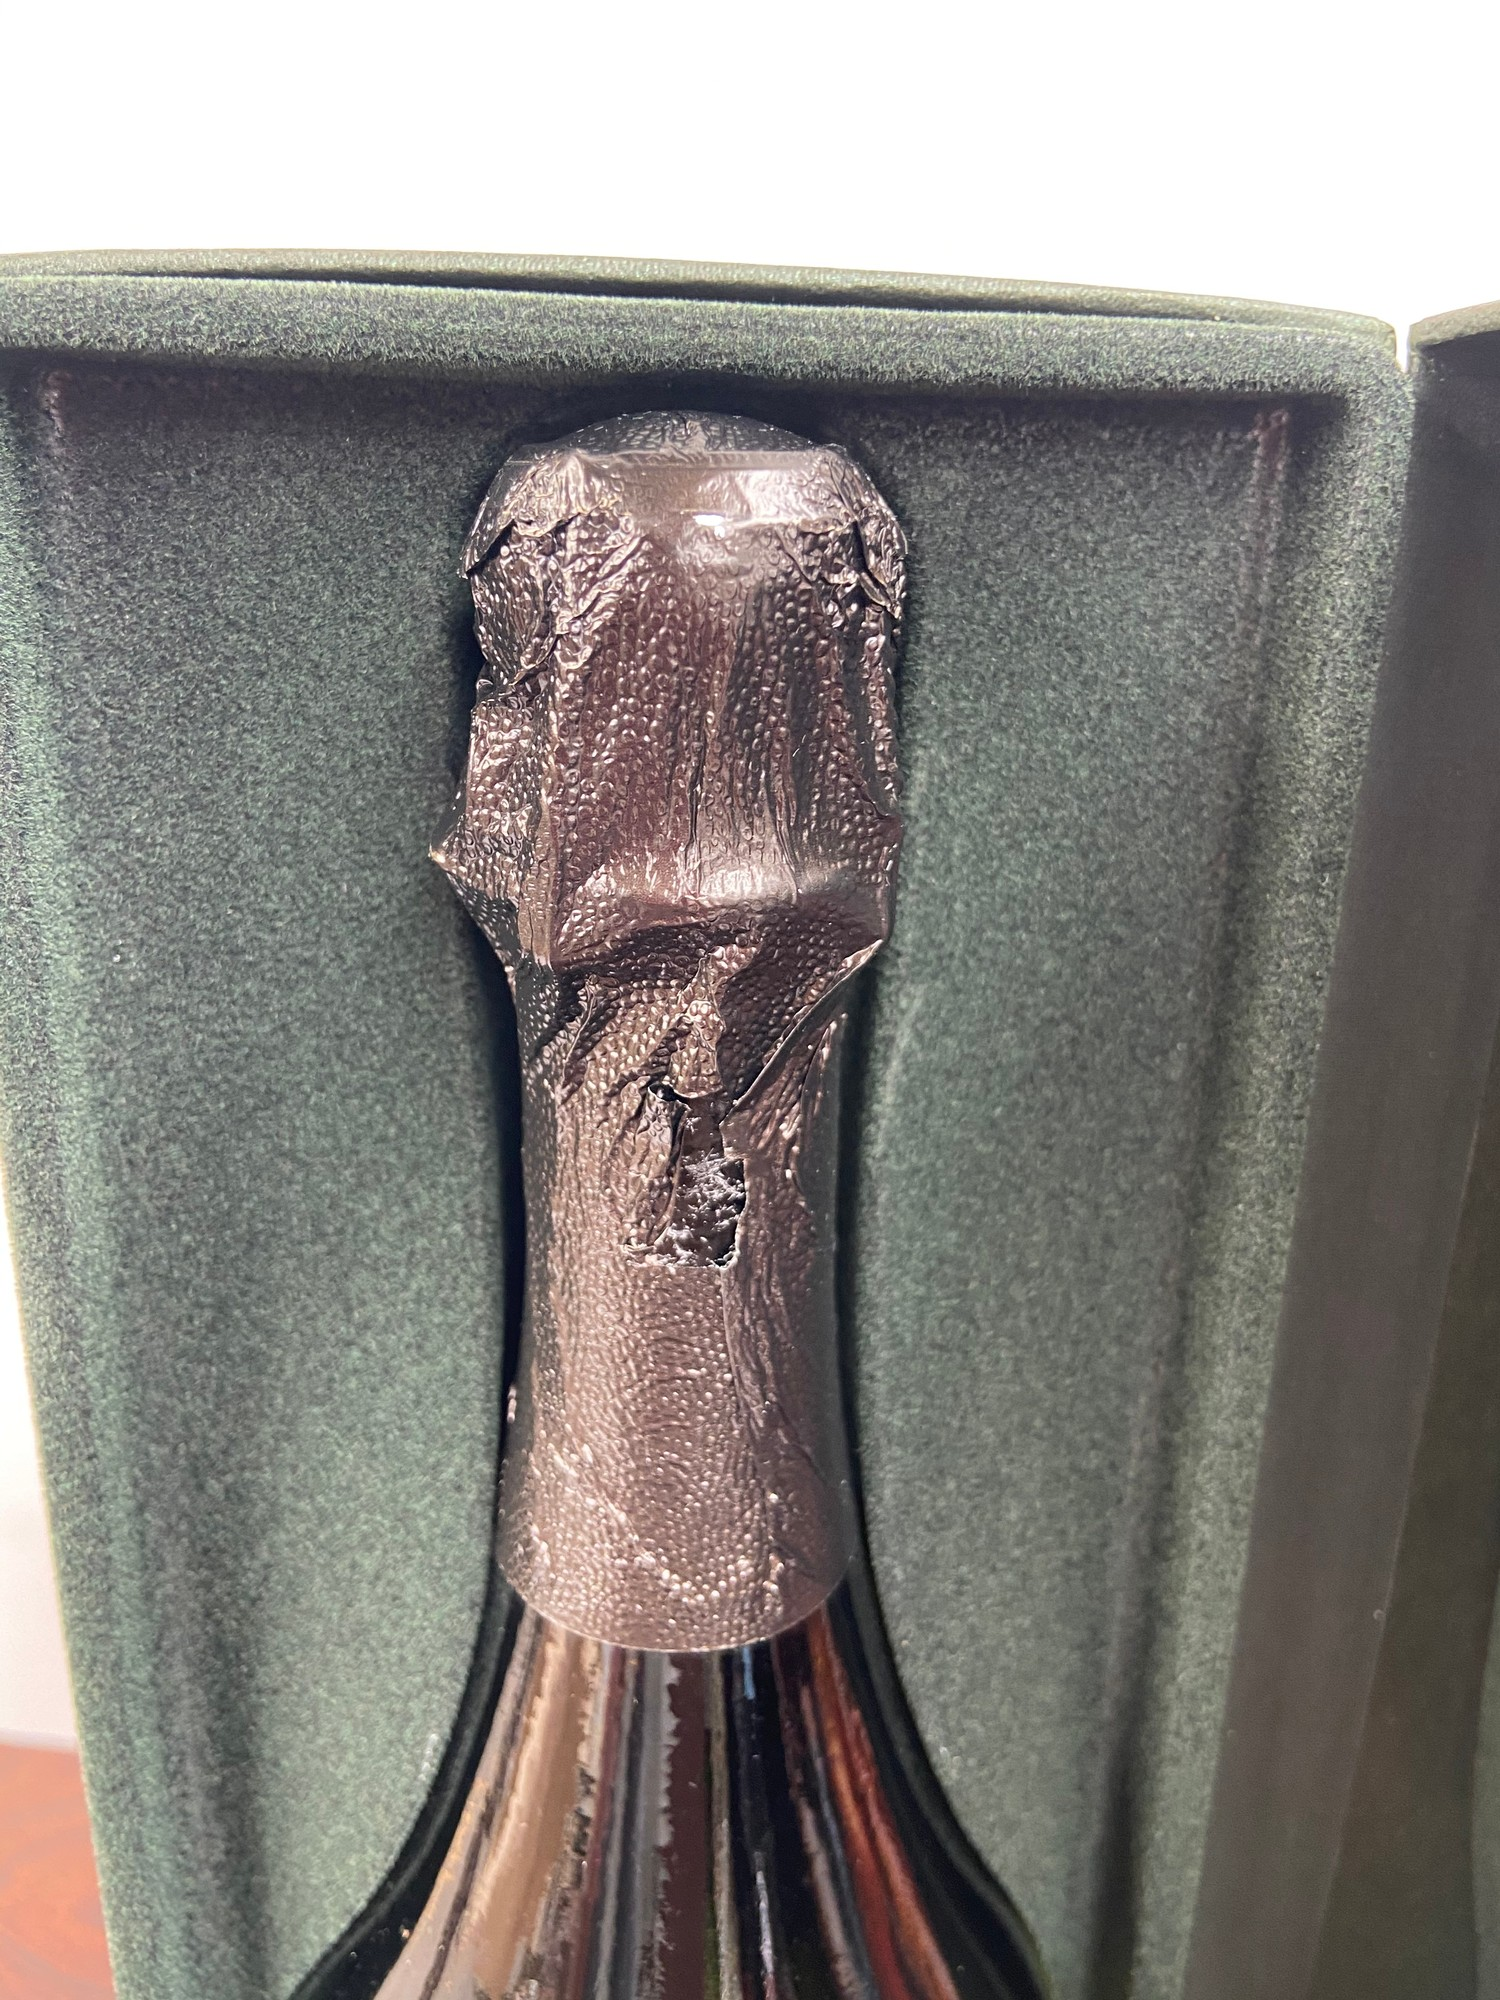 A Bottling of Champagne Dom Perignon Vintage 1998. Boxed. - Image 3 of 4